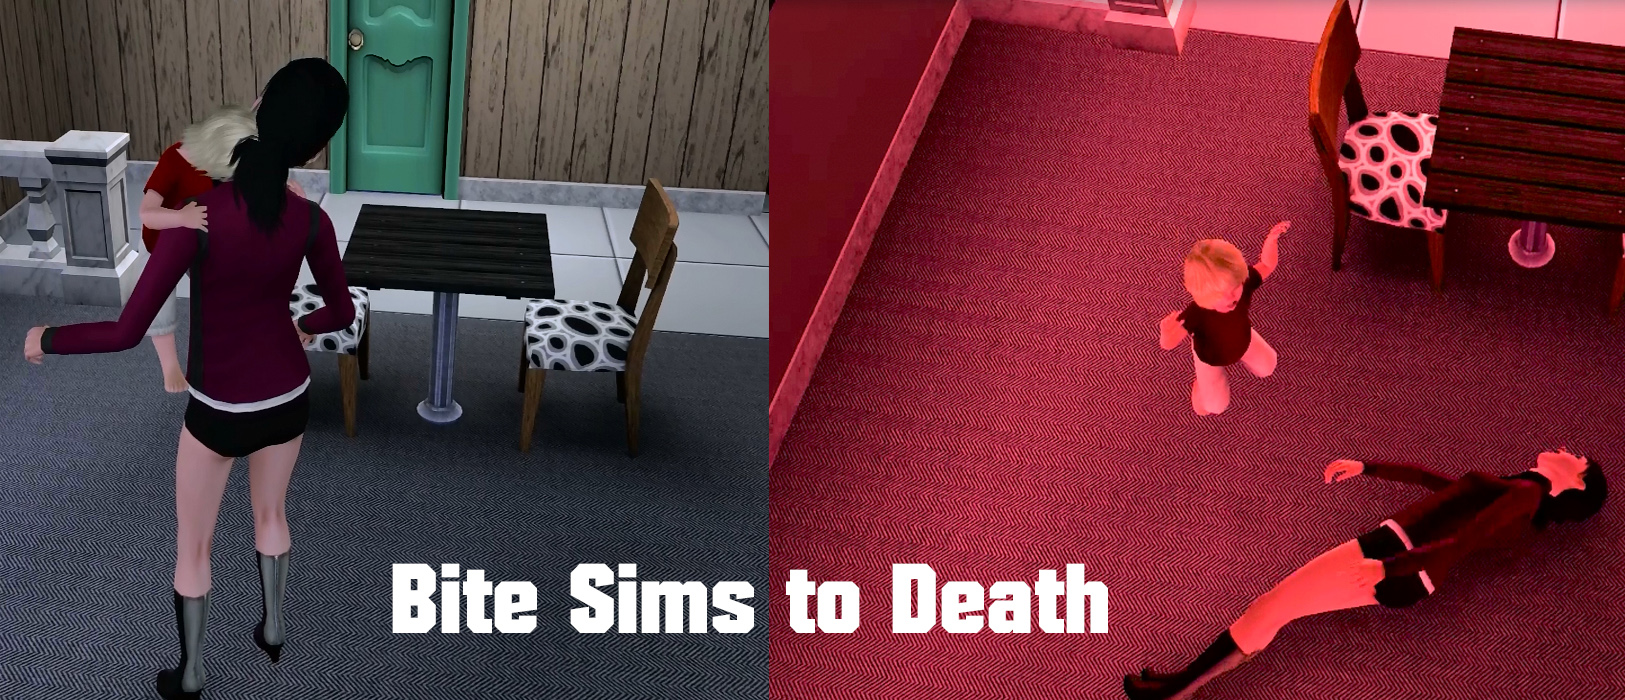 Mod The Sims - The Sims 3 Demonic Powers